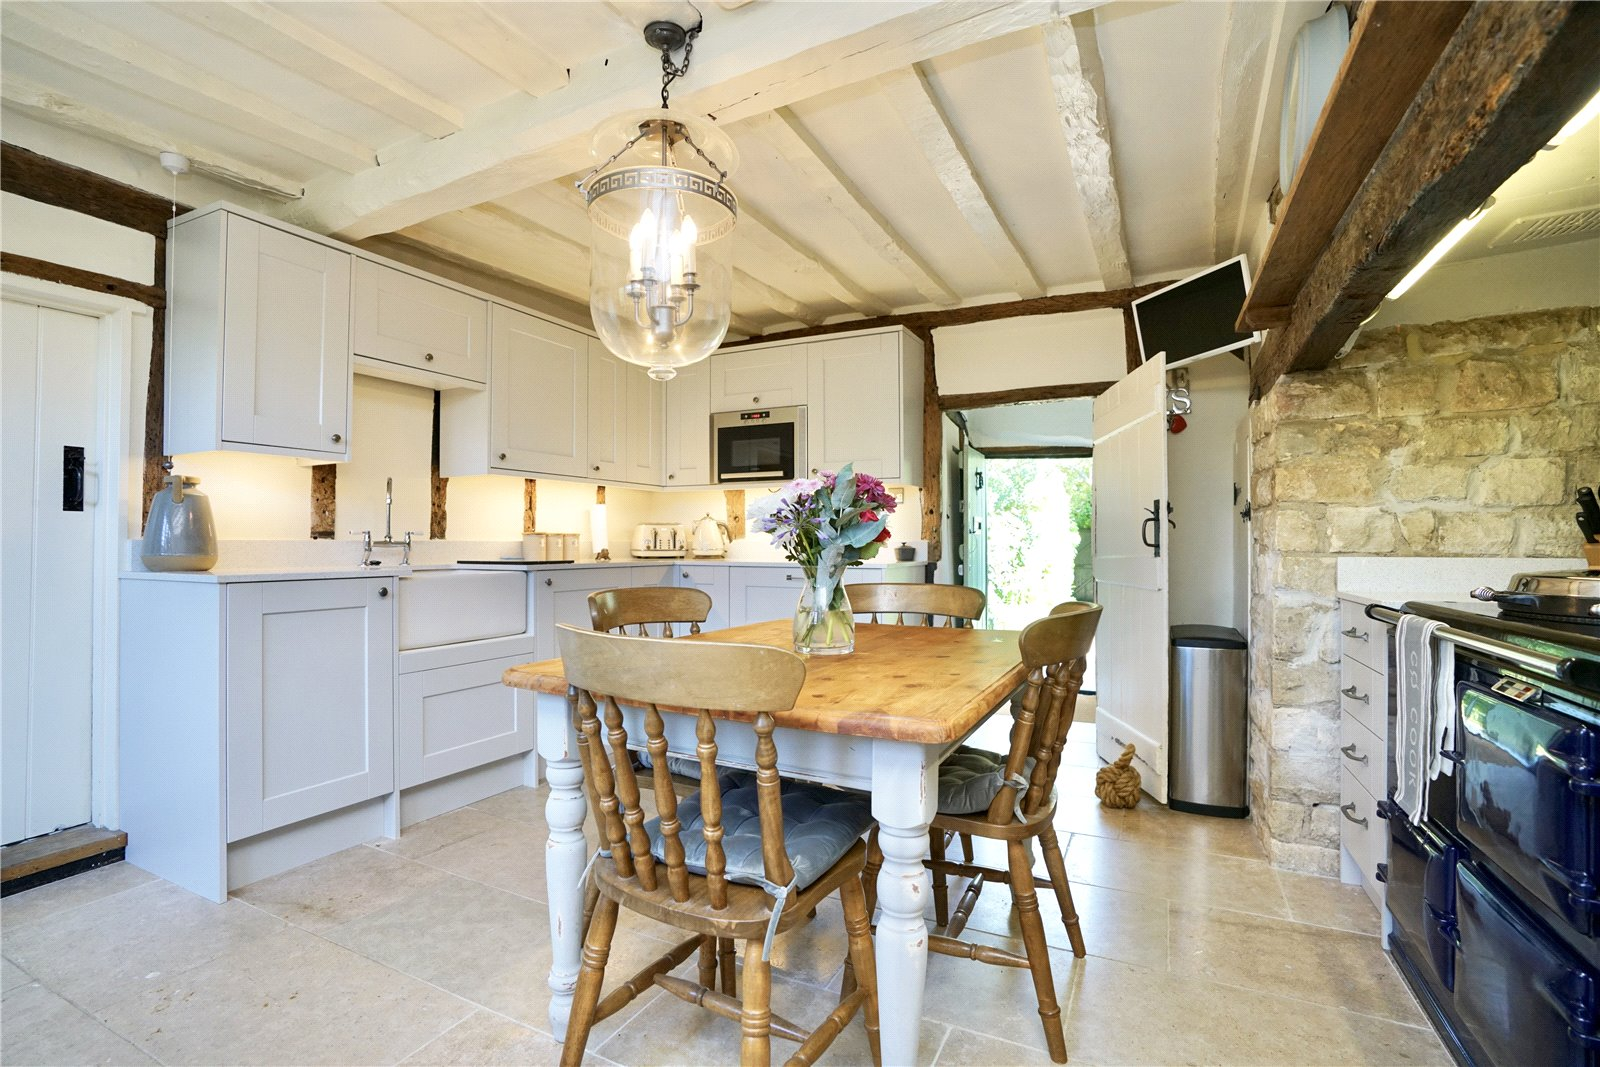 3 bed house for sale in Great Staughton 4